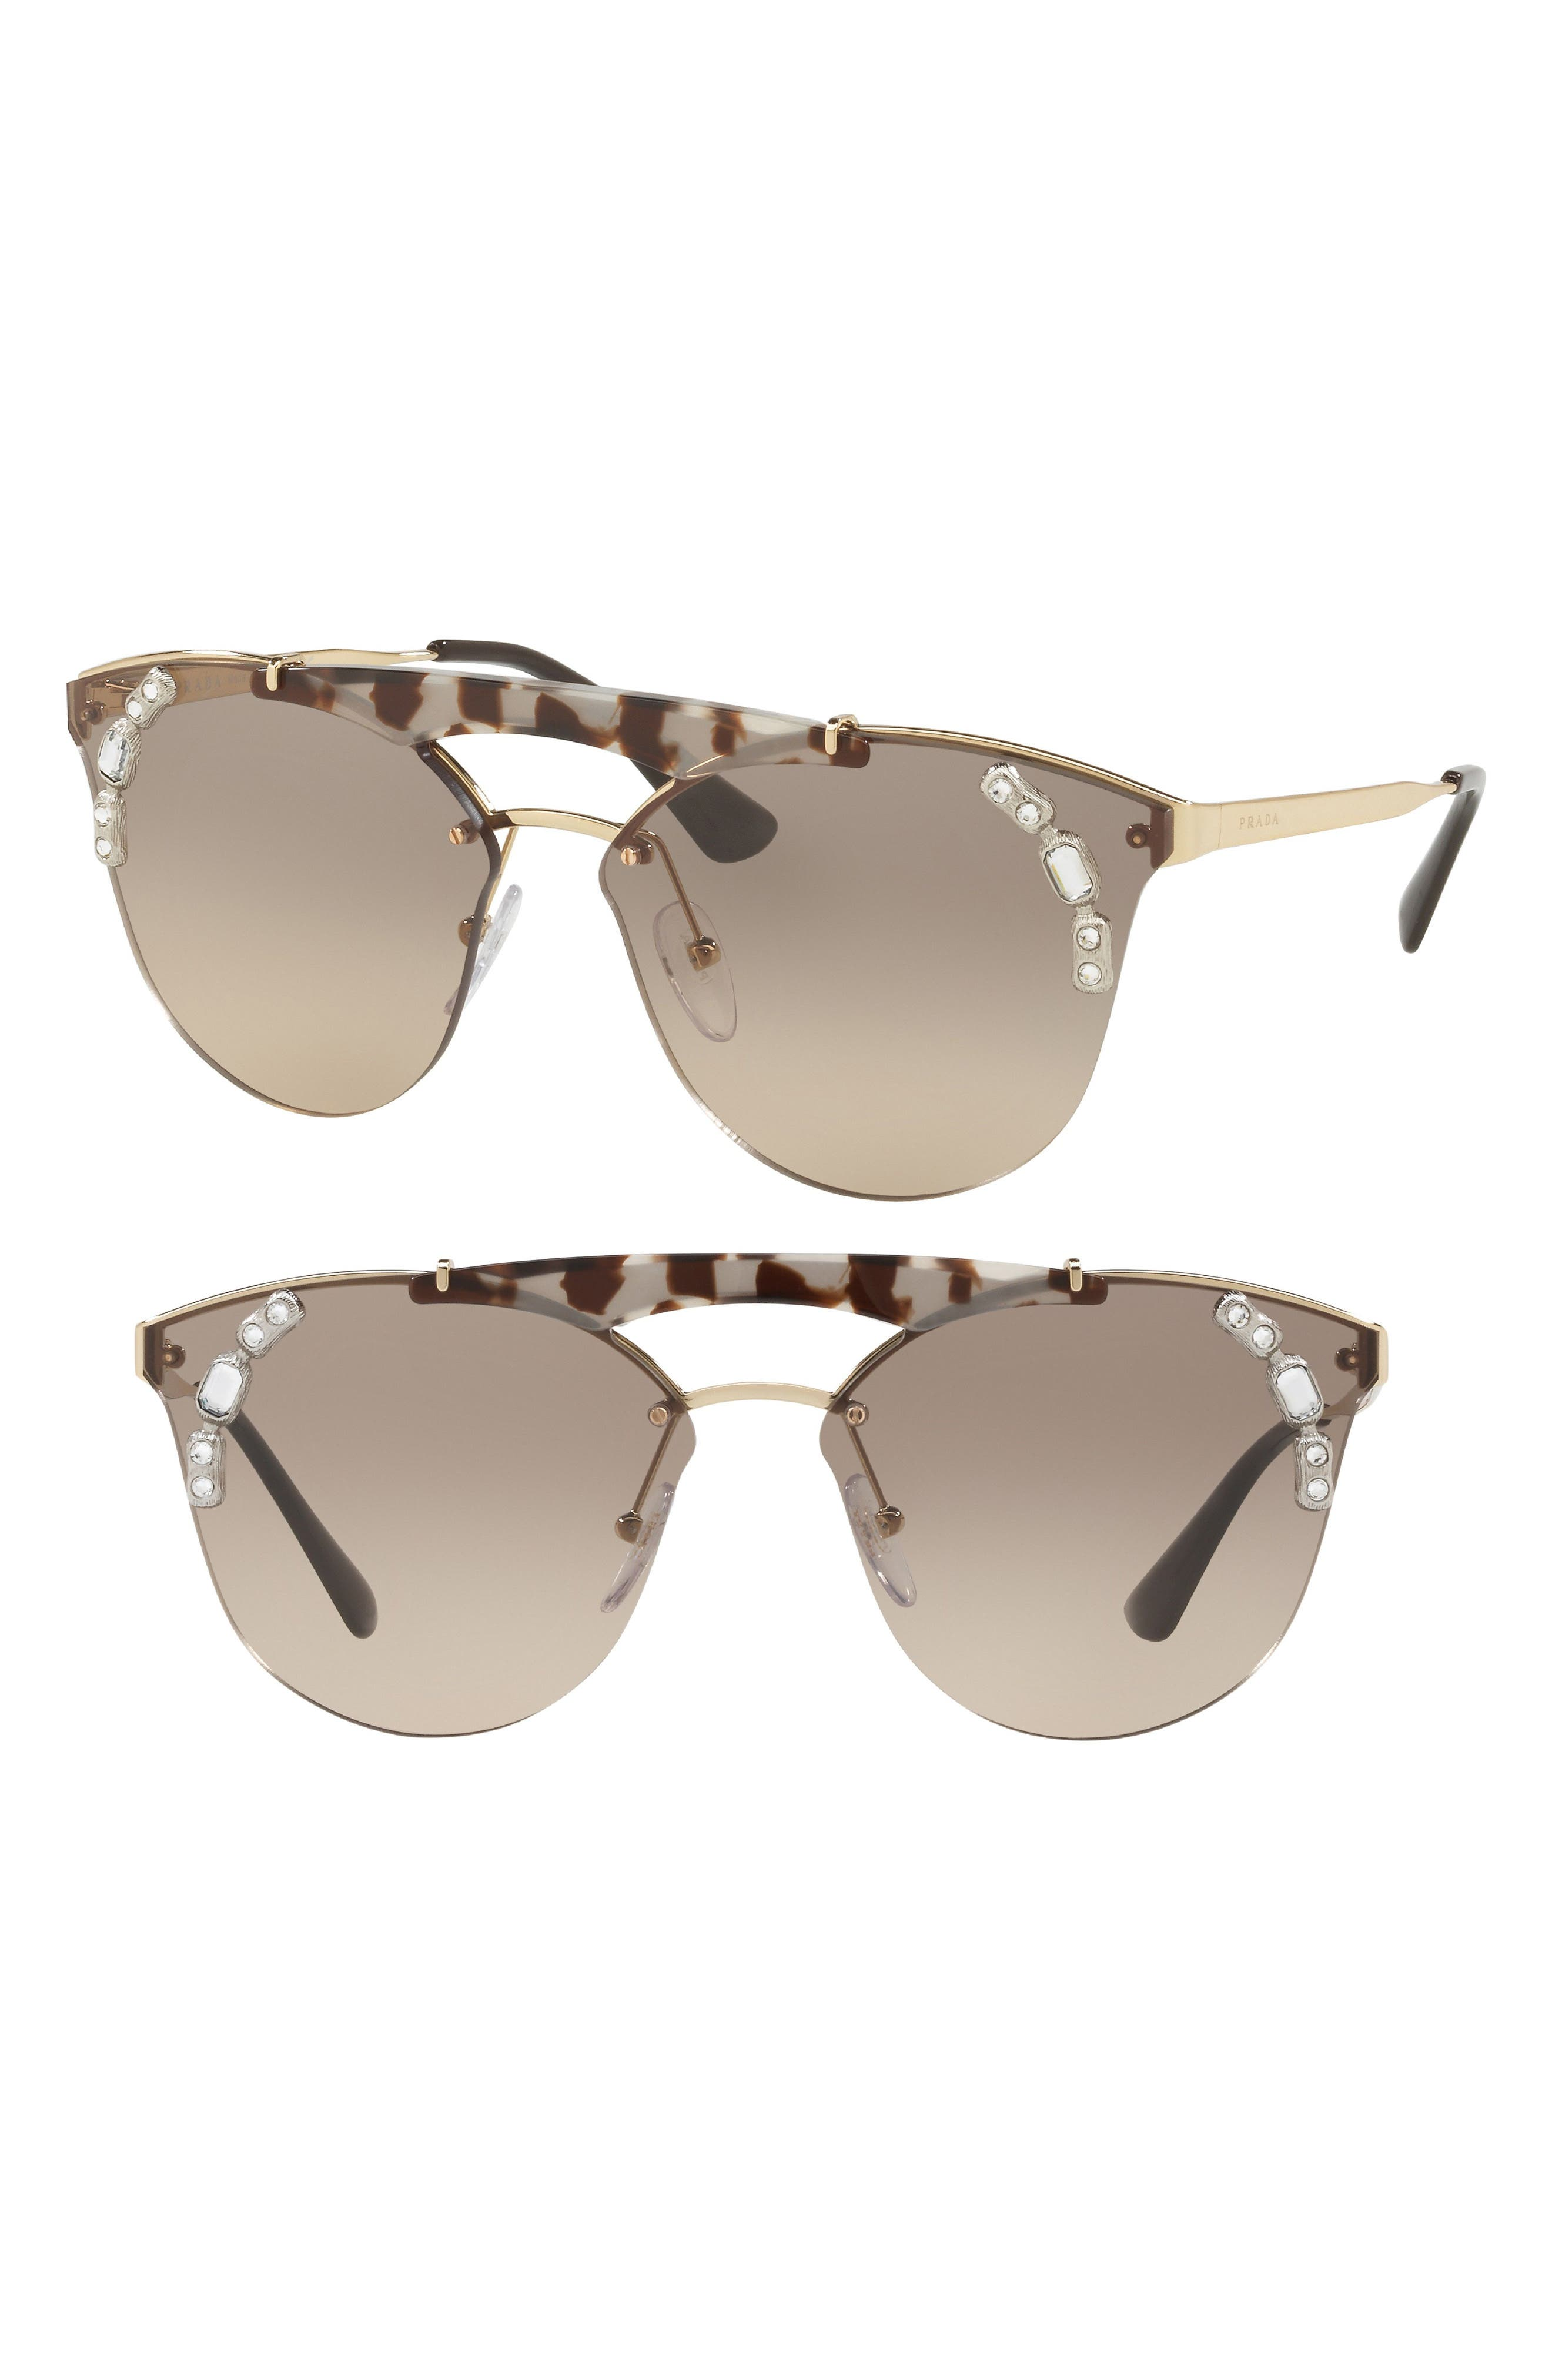 53mm Embellished Rimless Sunglasses,                             Alternate thumbnail 2, color,